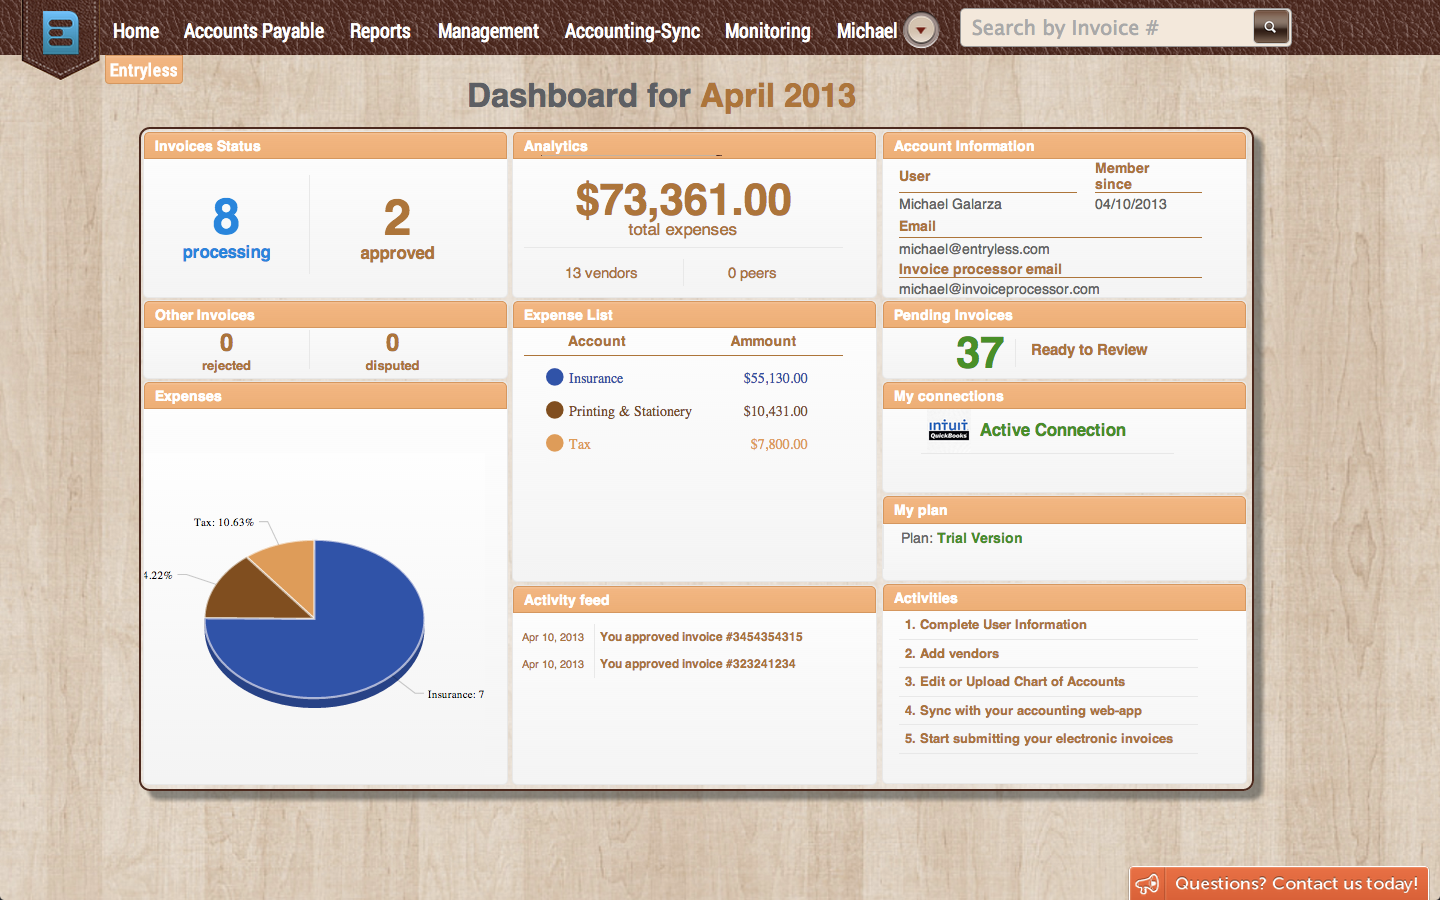 Get an overview on invoice activity from the central dashboard